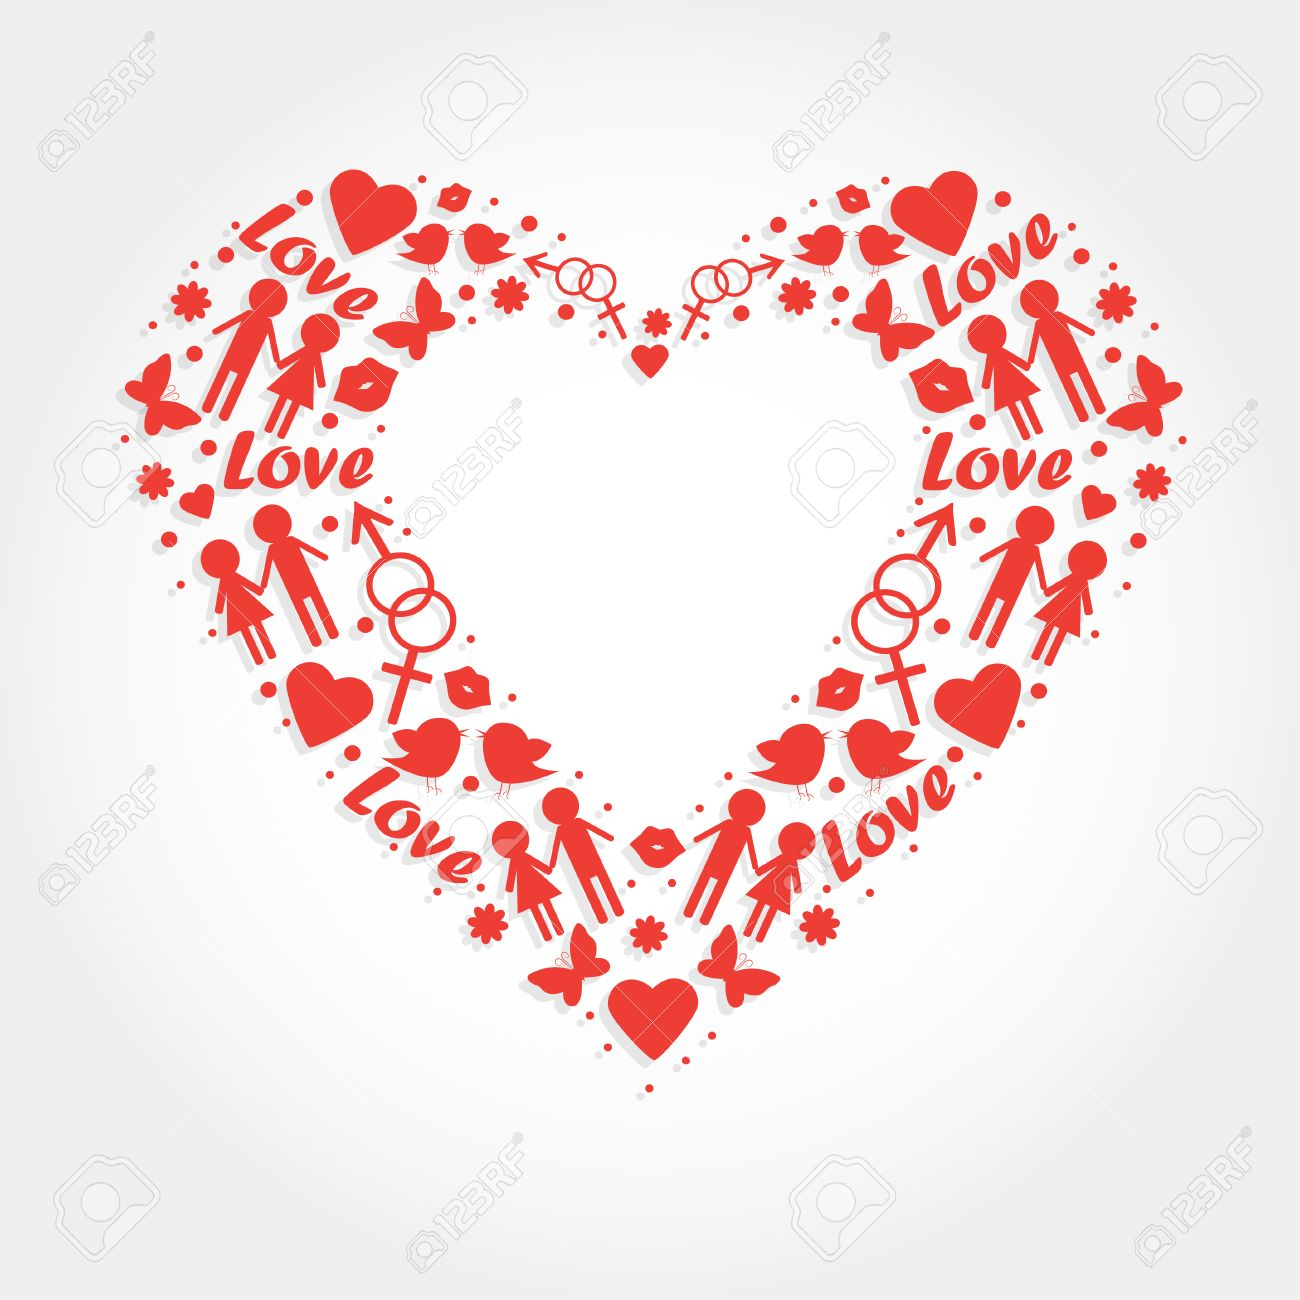 Heart with love symbols for wedding invitation valentines heart with love symbols for wedding invitation valentines day card stock vector 25993804 biocorpaavc Image collections